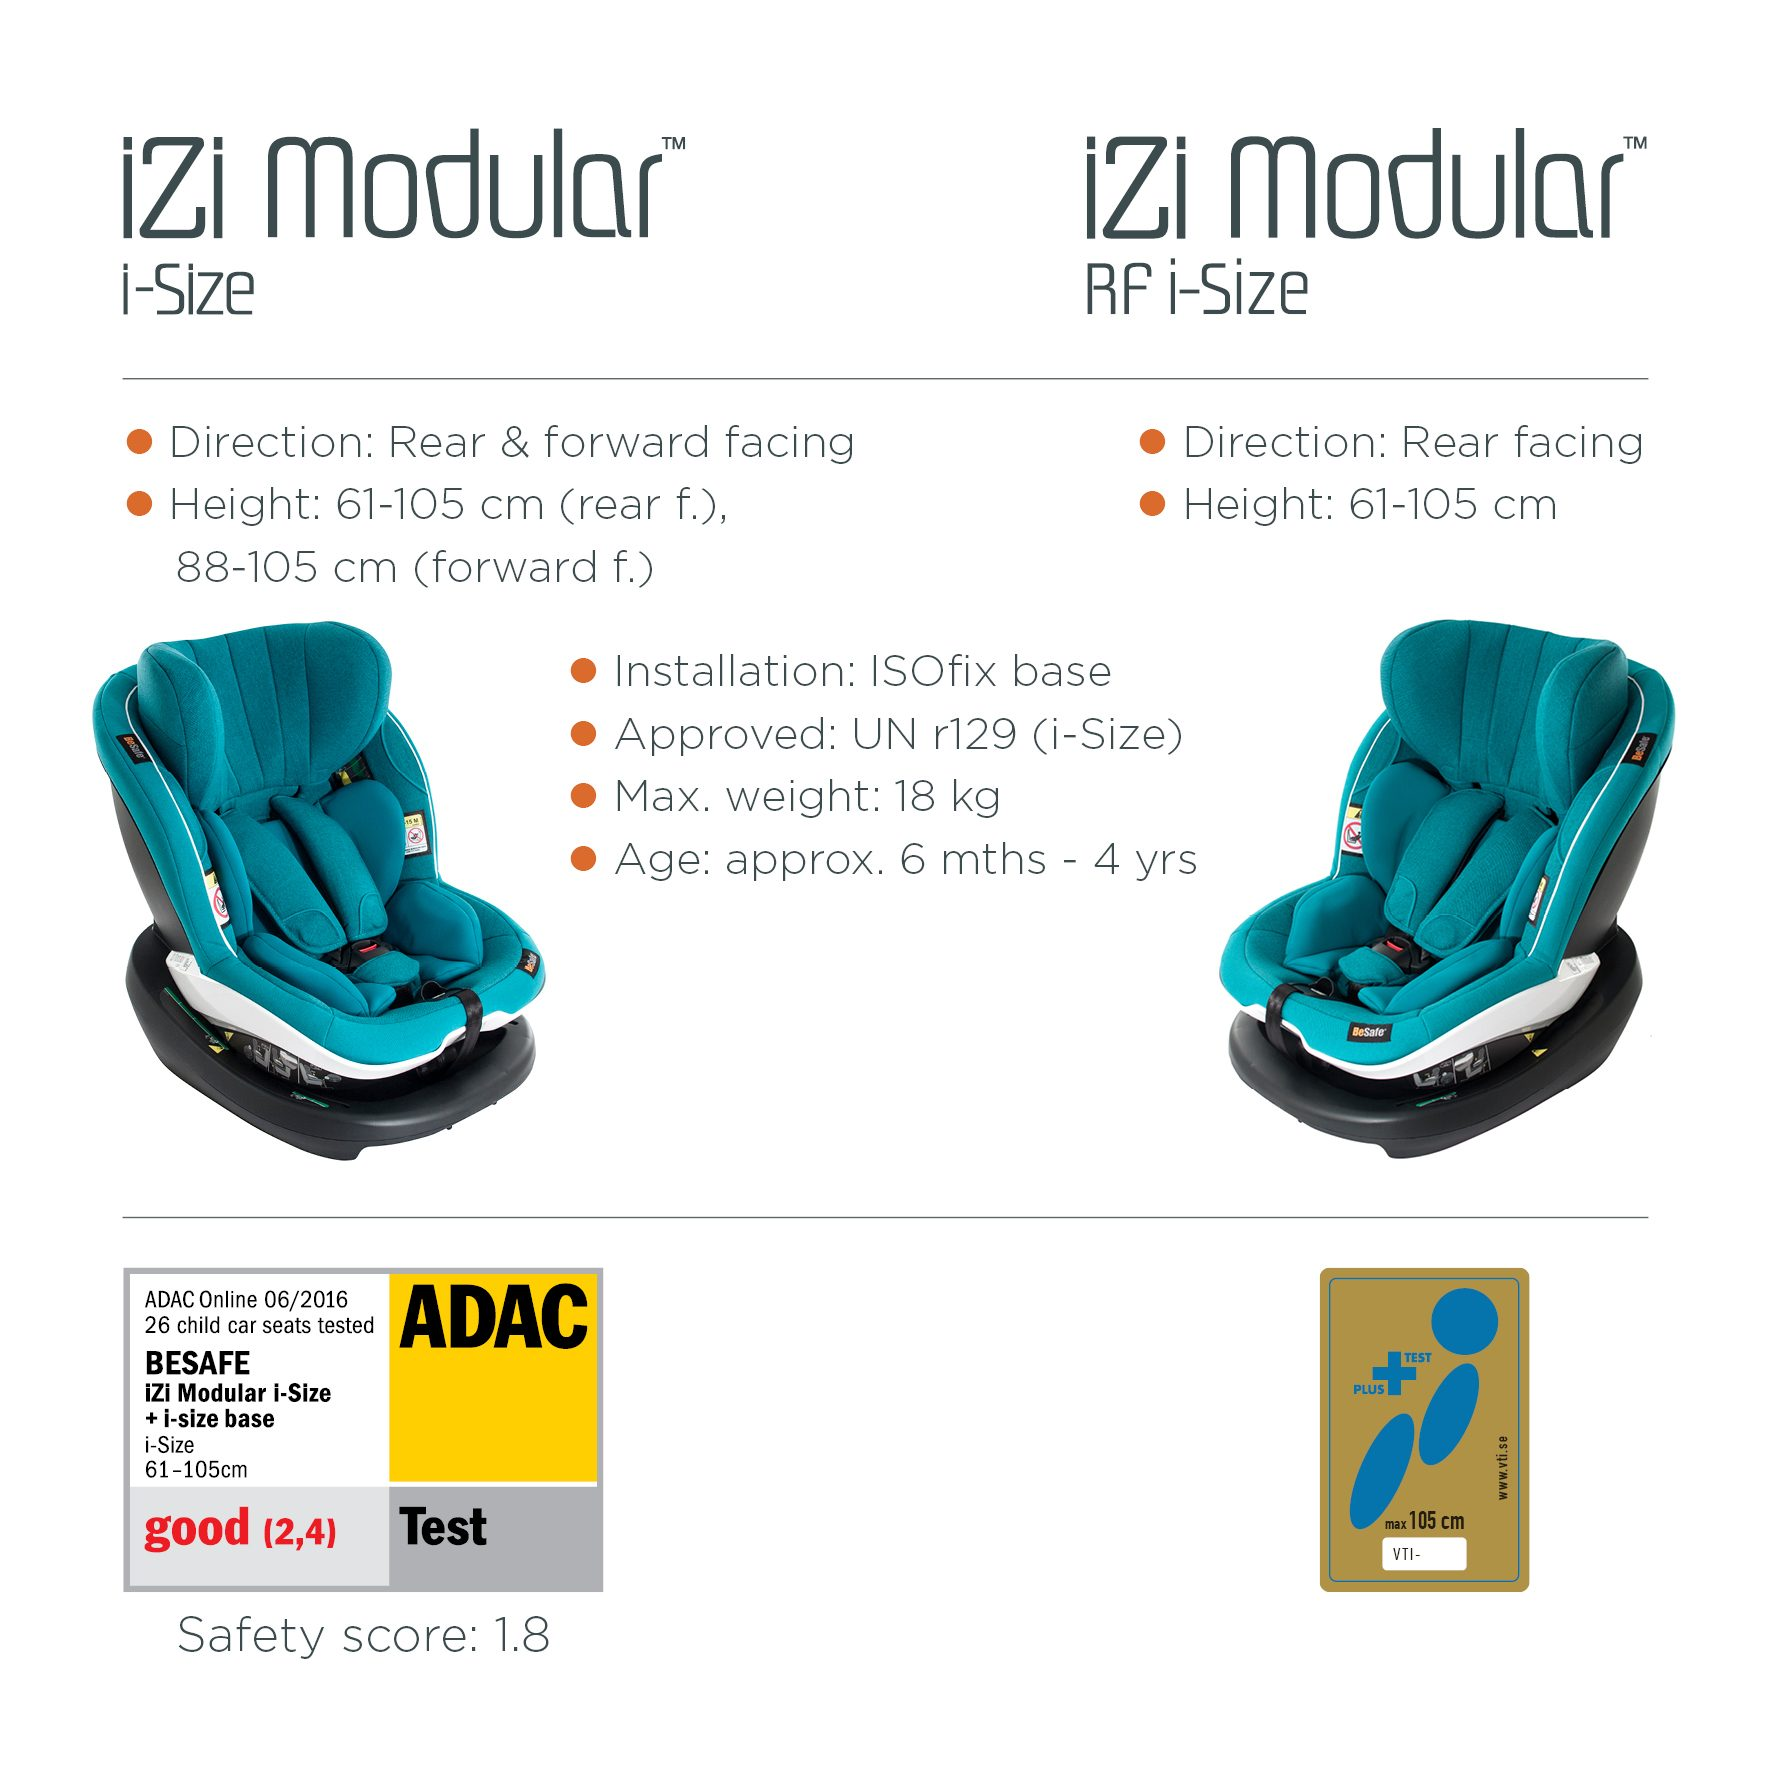 What Are The Differences Between These Two Seats Both Identical Except For IZi Modular I Size Also Featuring Option Of Installing It